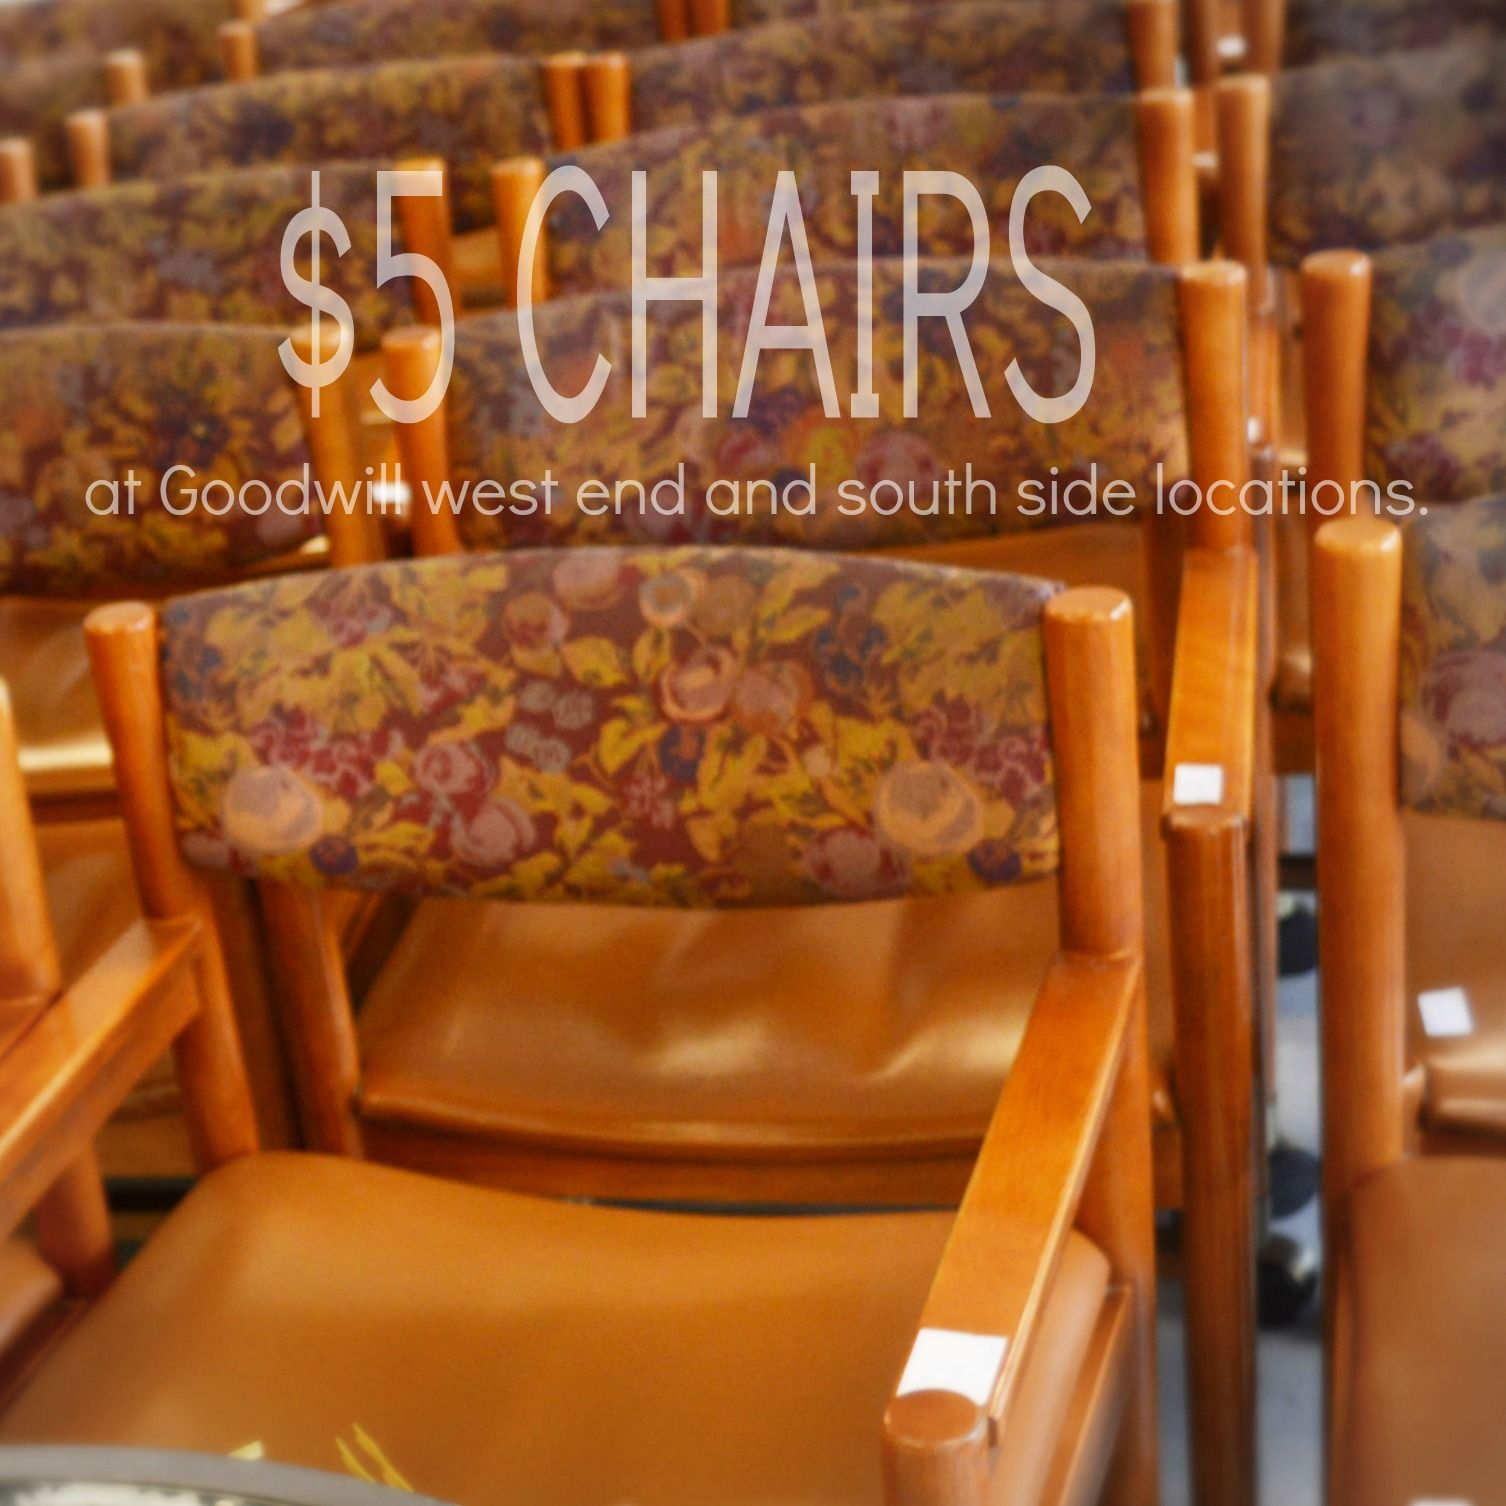 The Olive Garden in Edmonton donated 150 chairs to our south and ...